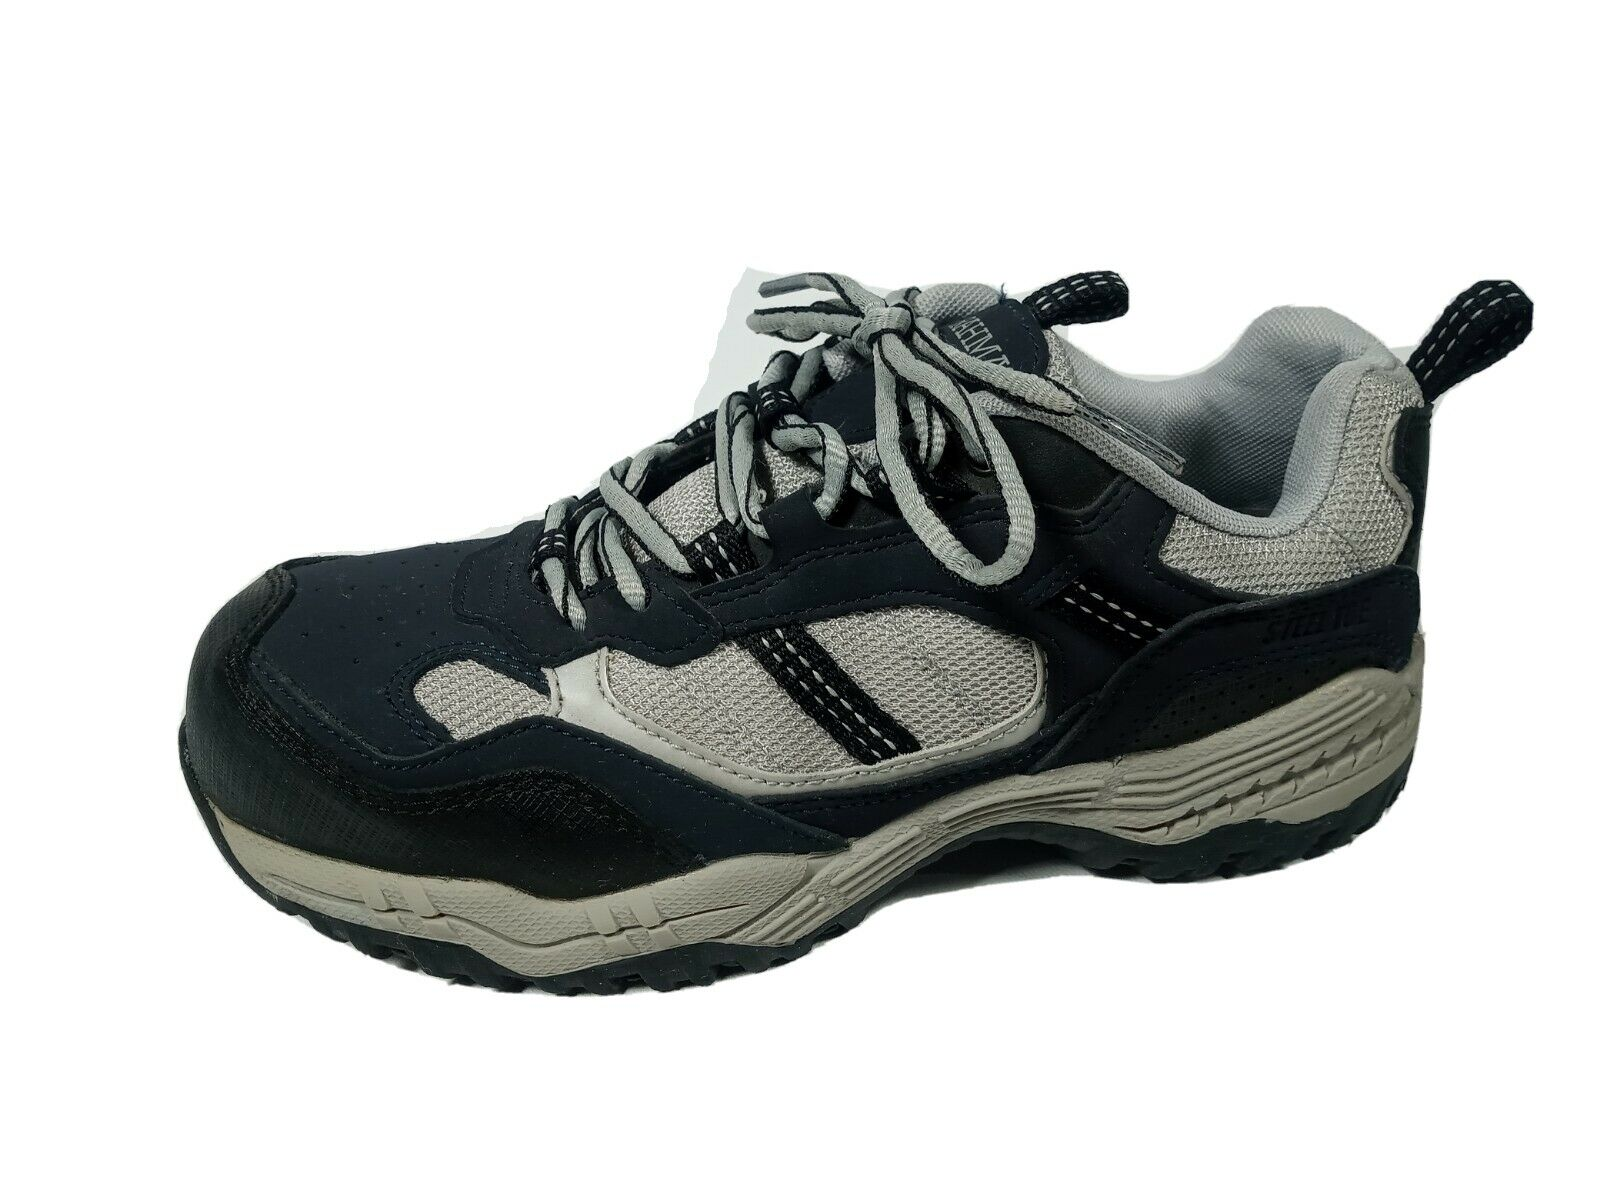 BRAHMA Amy Womens Size 6.5M Navy Blue Gray Leather Steel Toe Work Shoes Sneakers